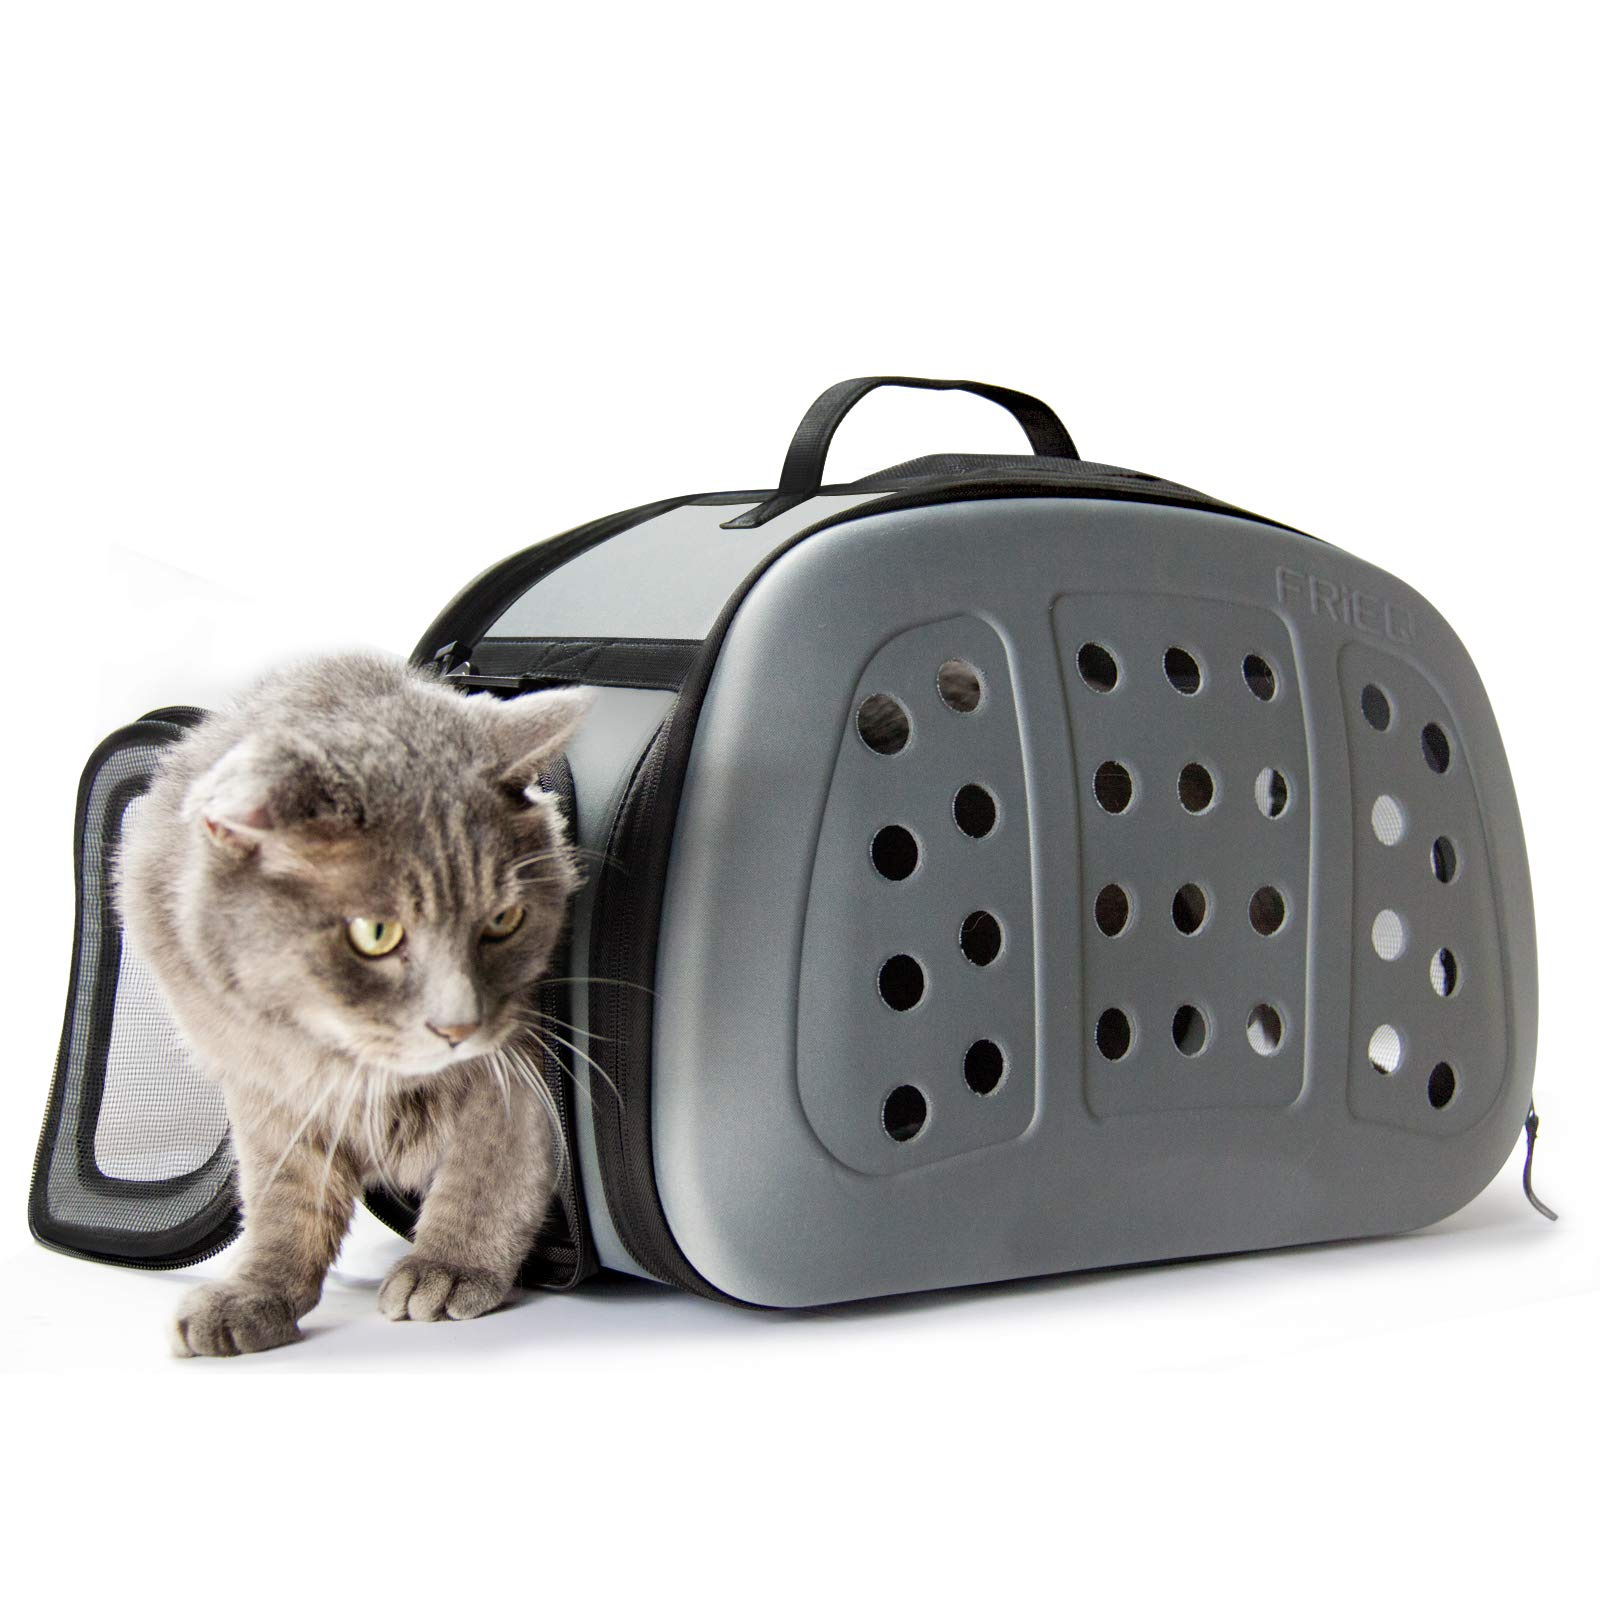 FRIEQ Foldable Hard Cover Pet Carrier with Shoulder Strap - Pet Travel Kennel Cats, Small Dogs & Rabbits by FRIEQ